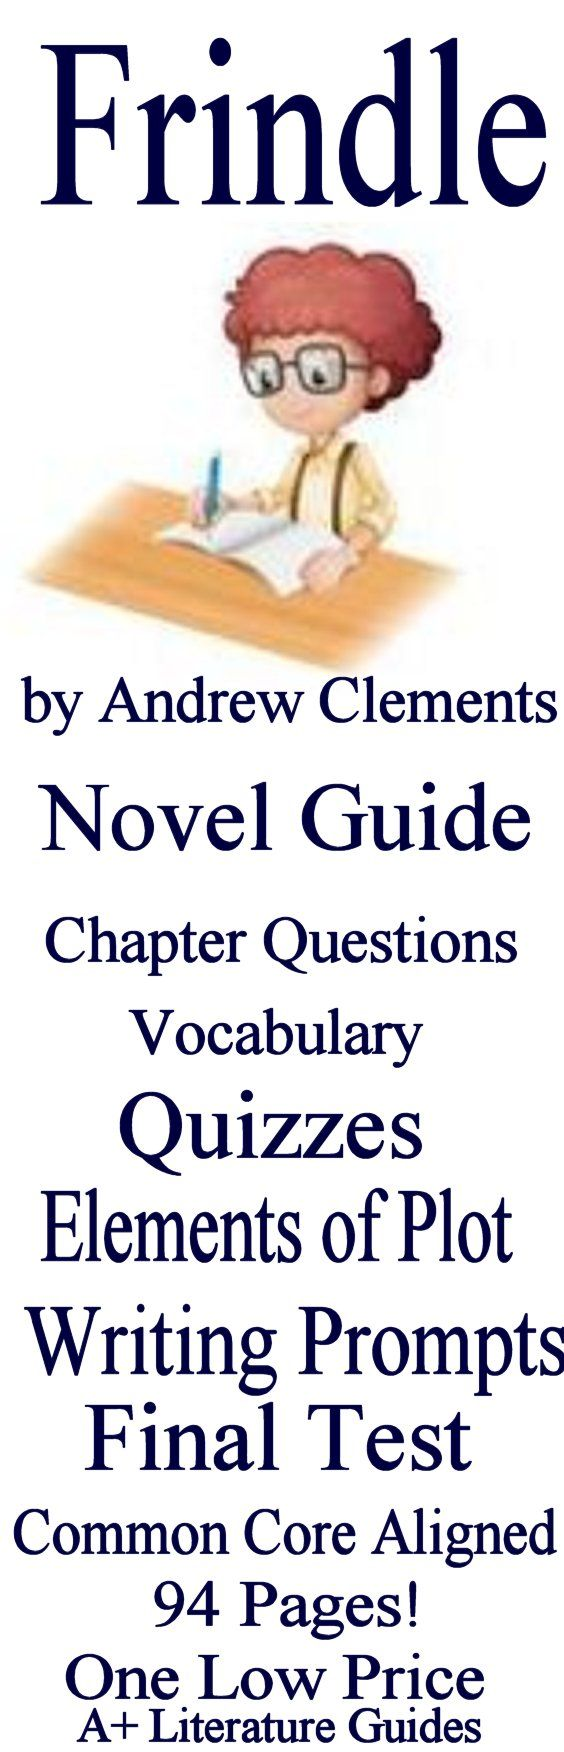 Only $5.00!!  Expanded to include 122 pages! Novel guide for Frindle by Andrew Clements. This guide has everything that you will need to teach and assess the novel. The calendar guide explains the skills and activities for the day, and weekly assessments have been added.  All assessments are Common-Core aligned.